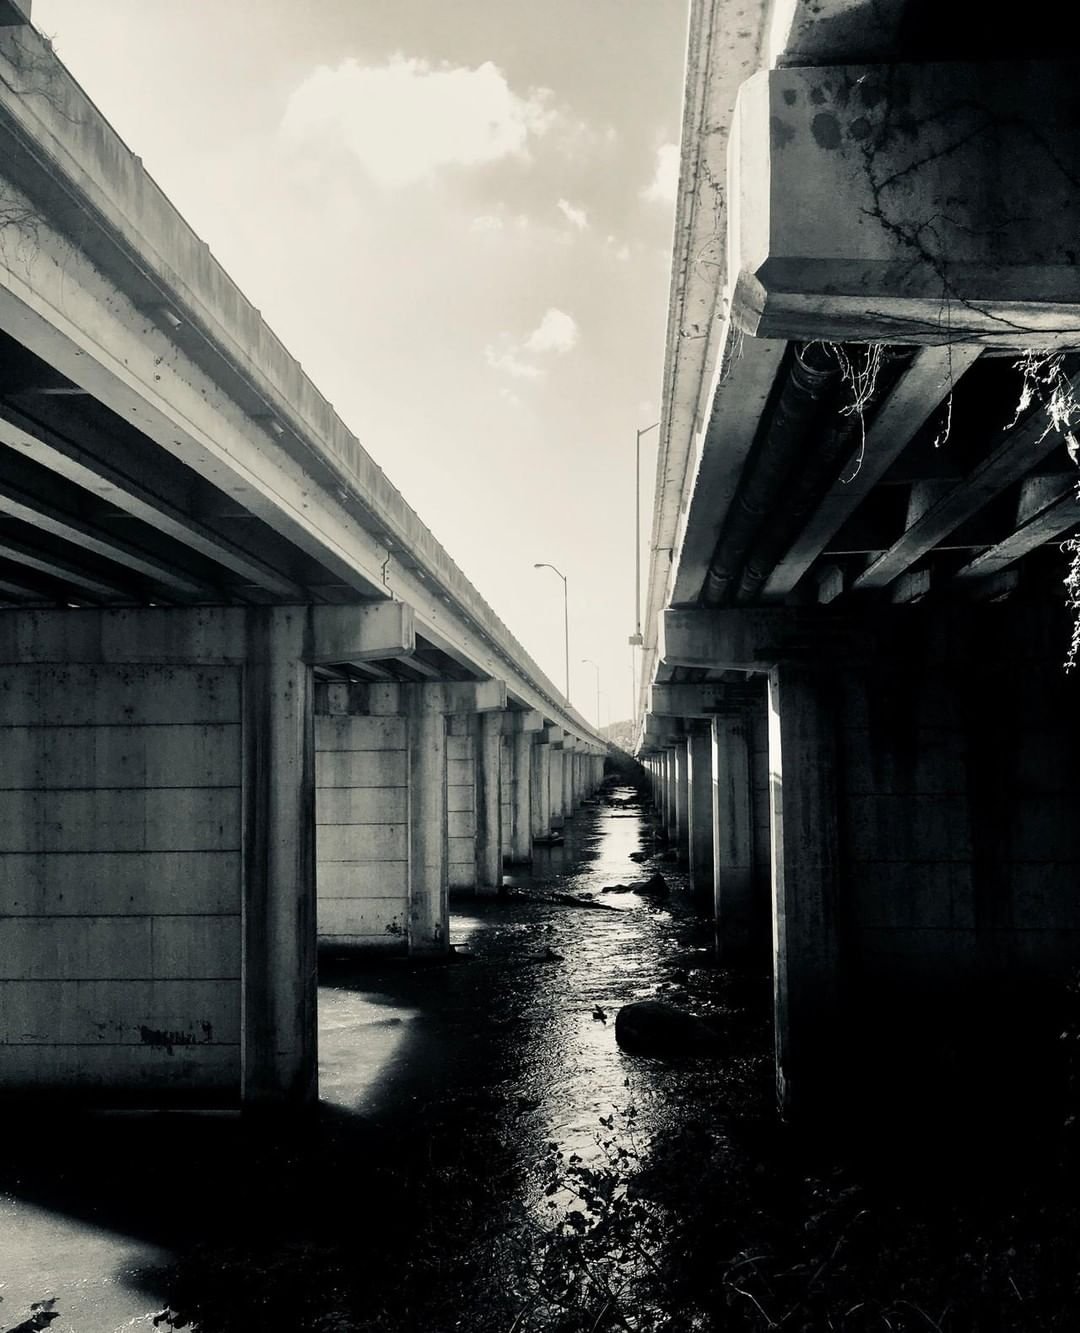 Under the I-126/US-76 bridge over the Broad River